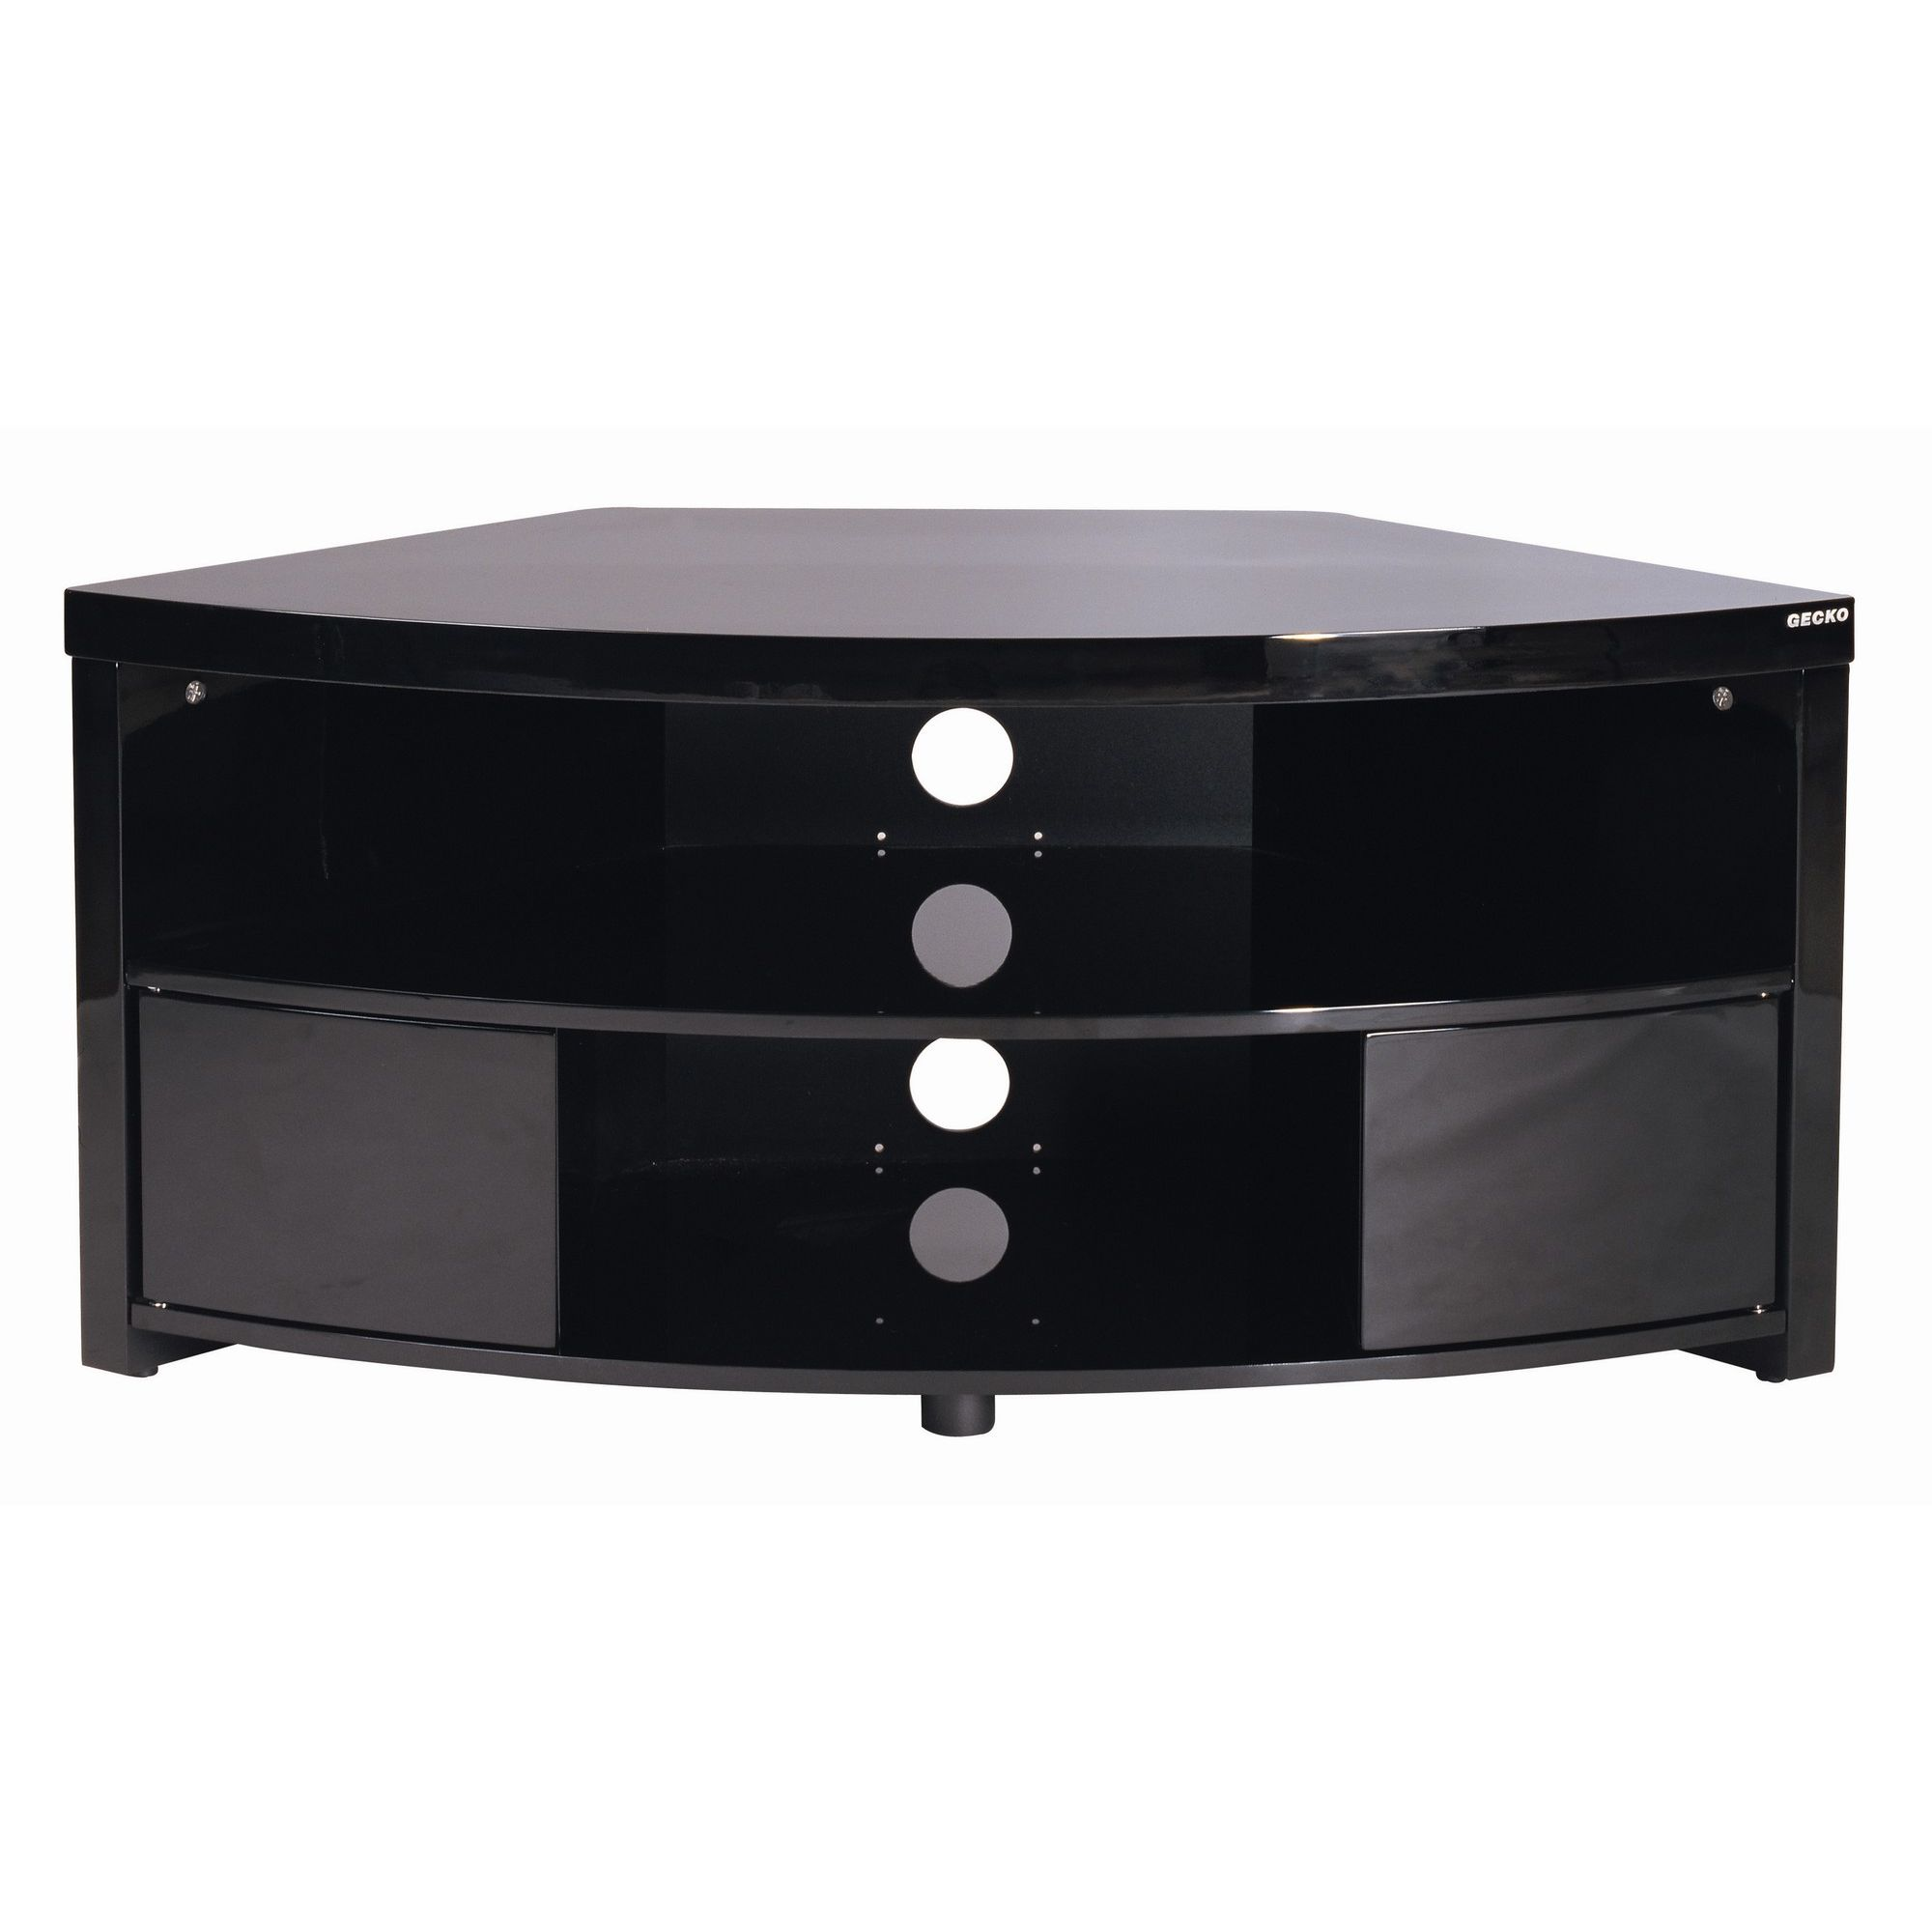 Gecko Impro TV Cabinet - Gloss Black at Tesco Direct